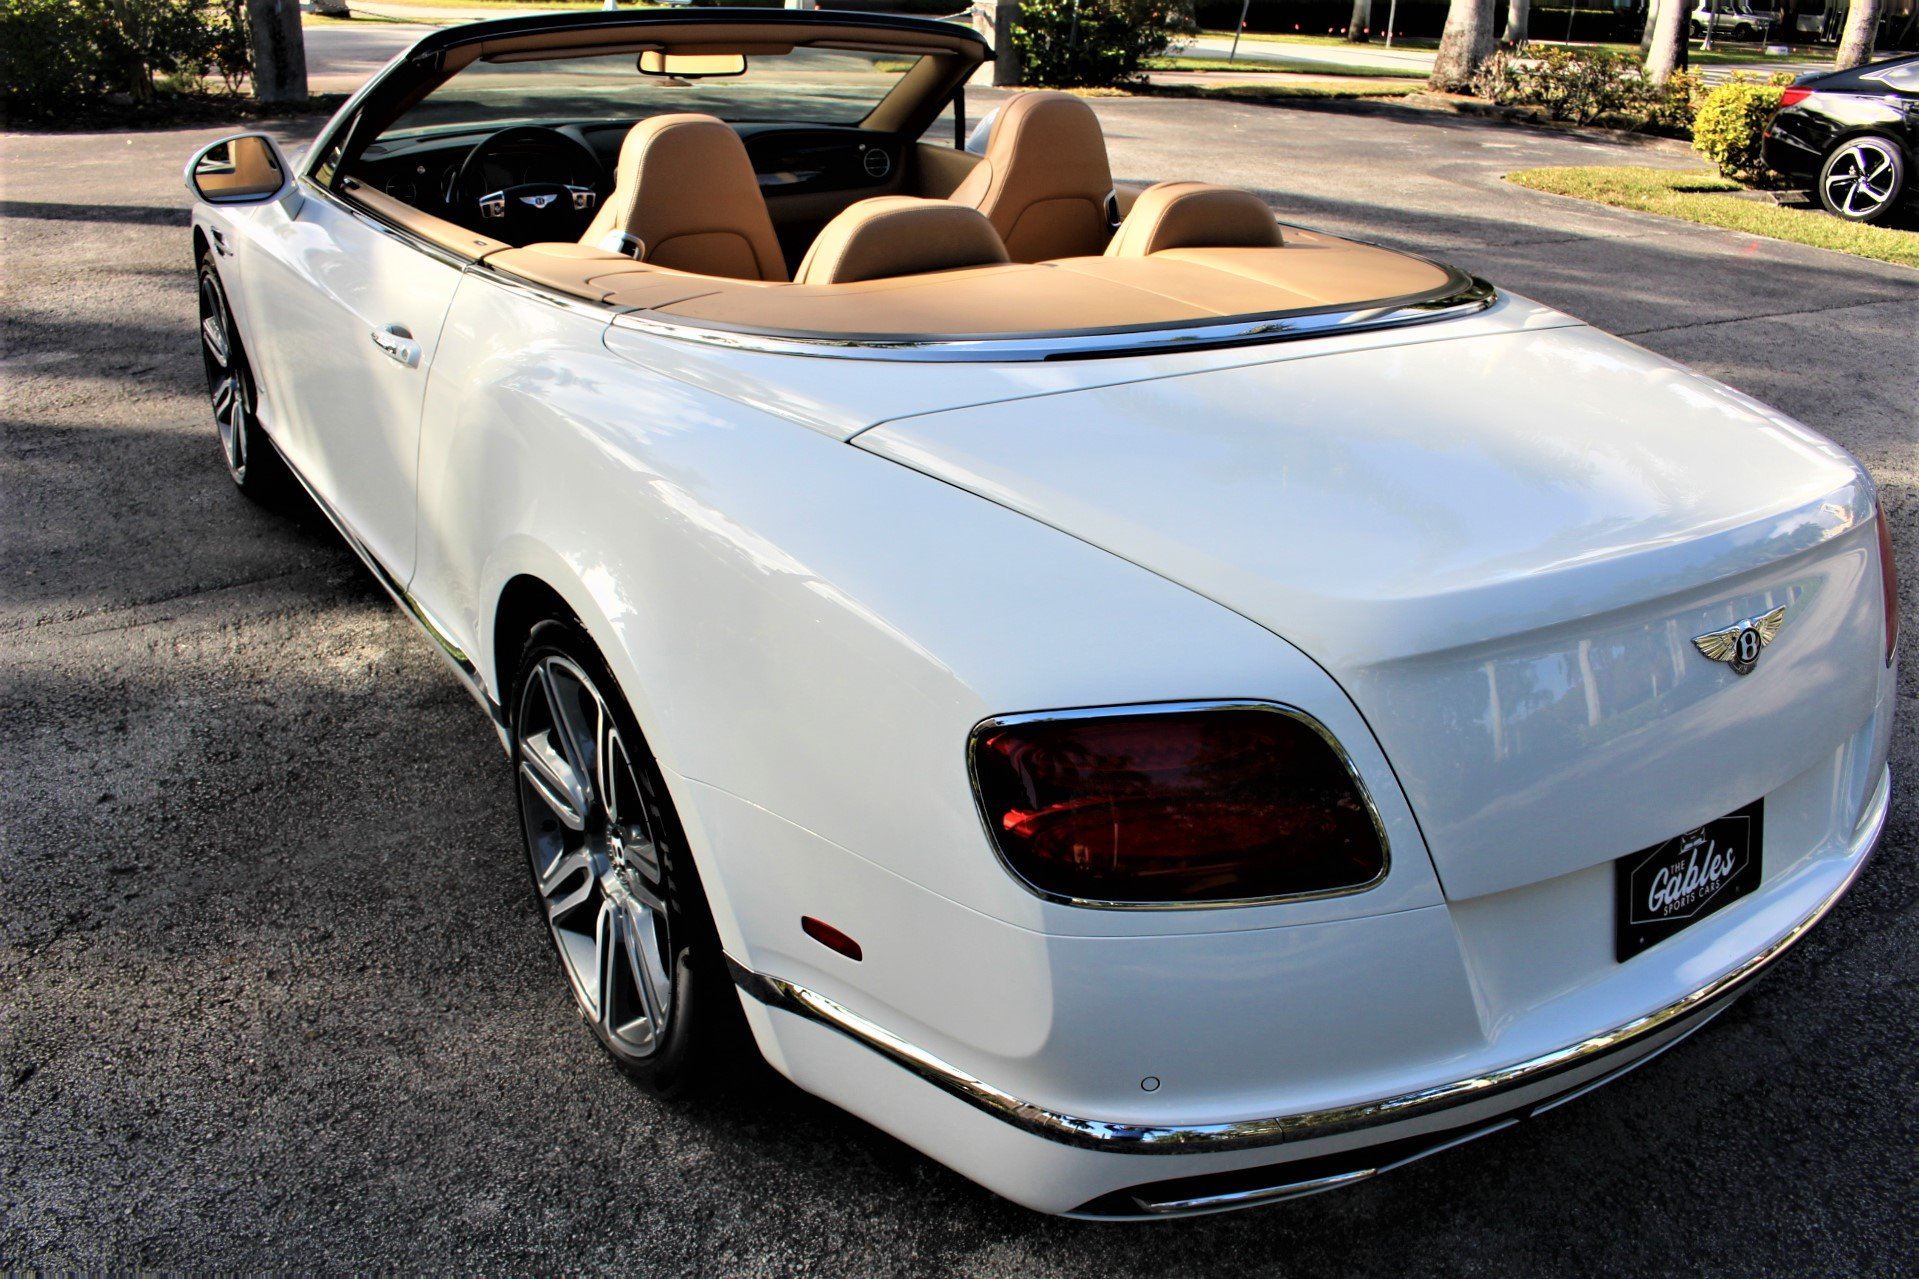 Used 2016 Bentley Continental GT for sale Sold at The Gables Sports Cars in Miami FL 33146 4